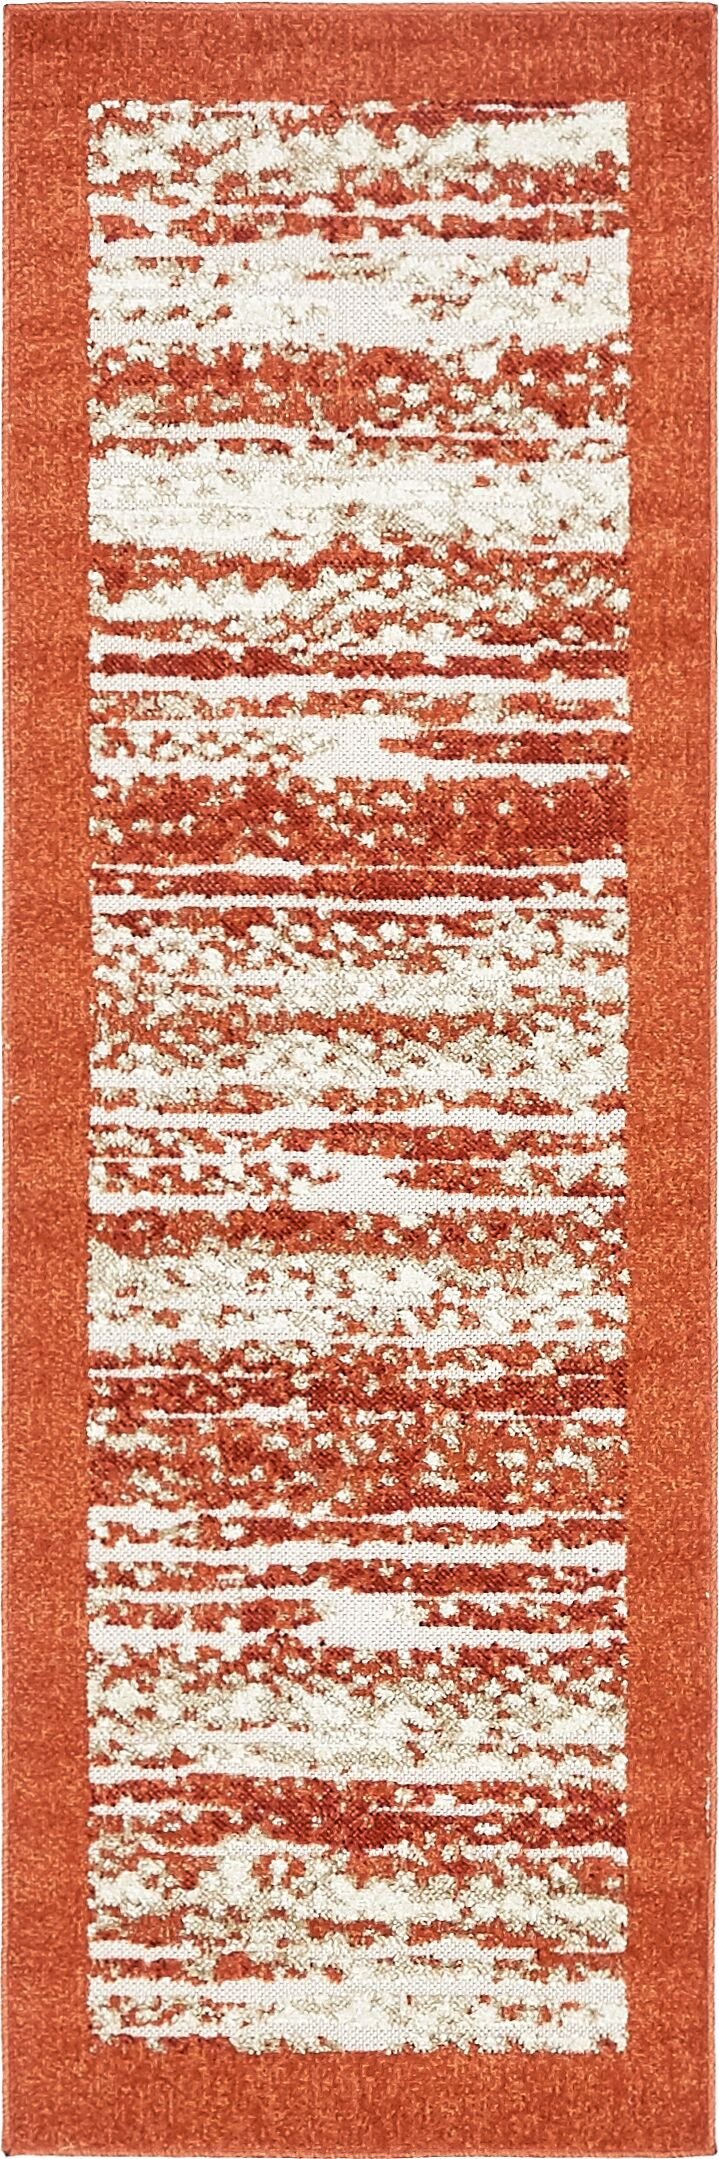 Designed with durability in mind, this versatile area rug is equally suited to sit inside your home or outdoors. Its terracotta-toned border brings a pop of color to any arrangement, while a neutral and orange striated design in the center tones down ...